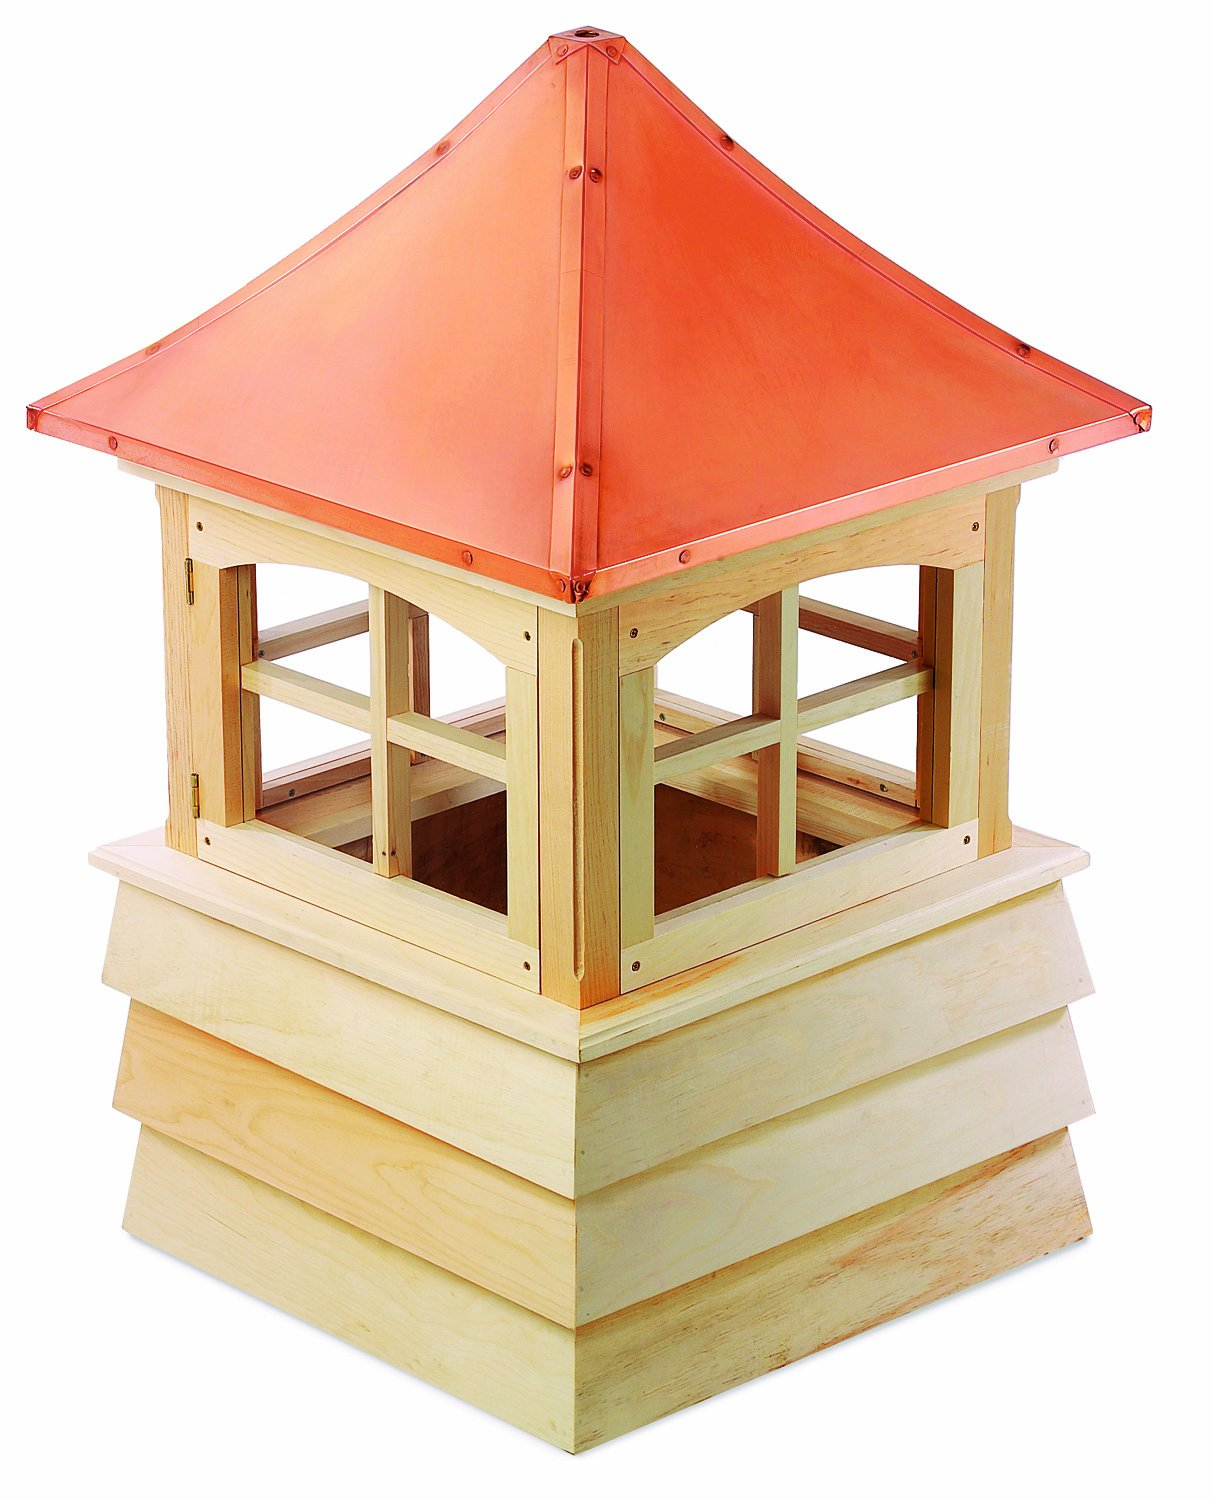 Good Directions Guilford Wood Cupola with Copper Roof, 22'' x 32'' by Good Directions